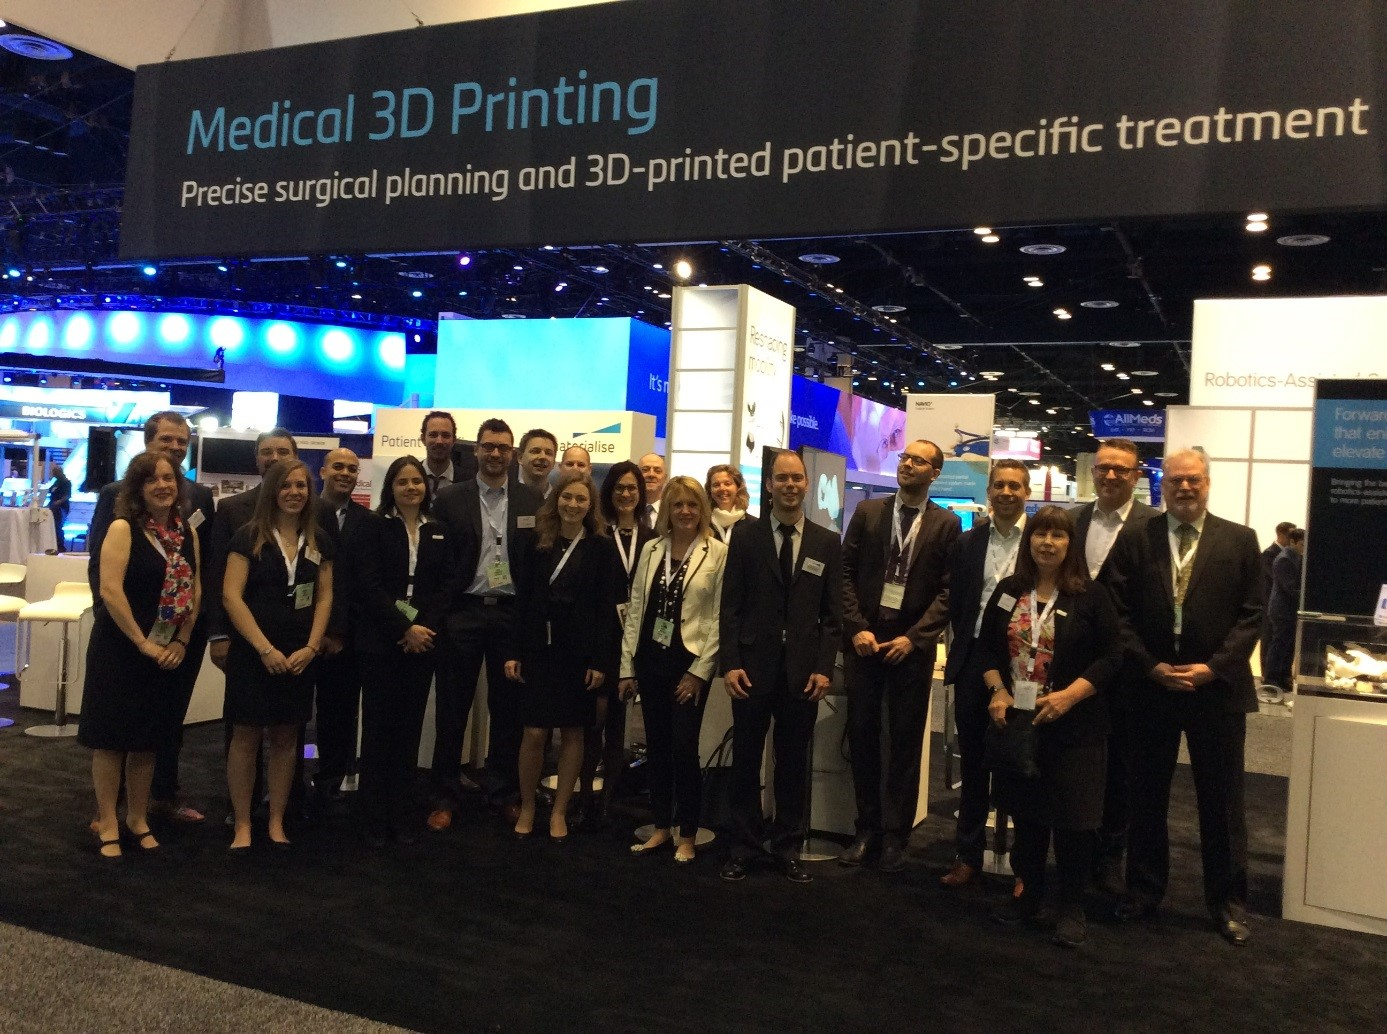 The 3D Revolution of the Medical World: A Review of This Year's Biggest Orthopaedic Event